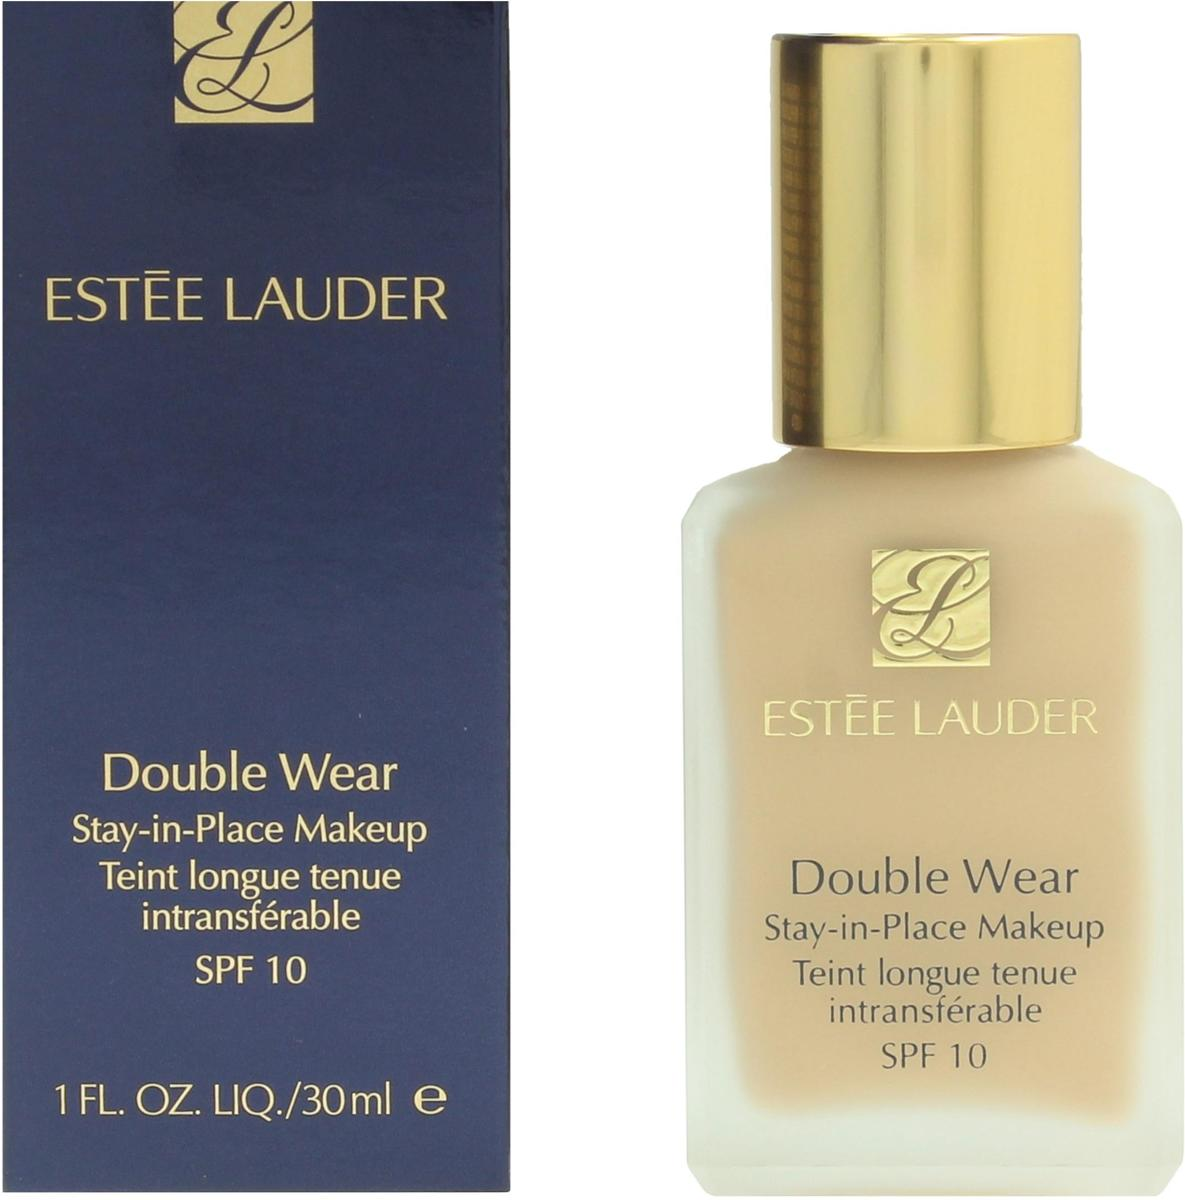 E.Lauder Double Wear Stay-In Place Makeup 1W1 Bone SPF10 30 ml